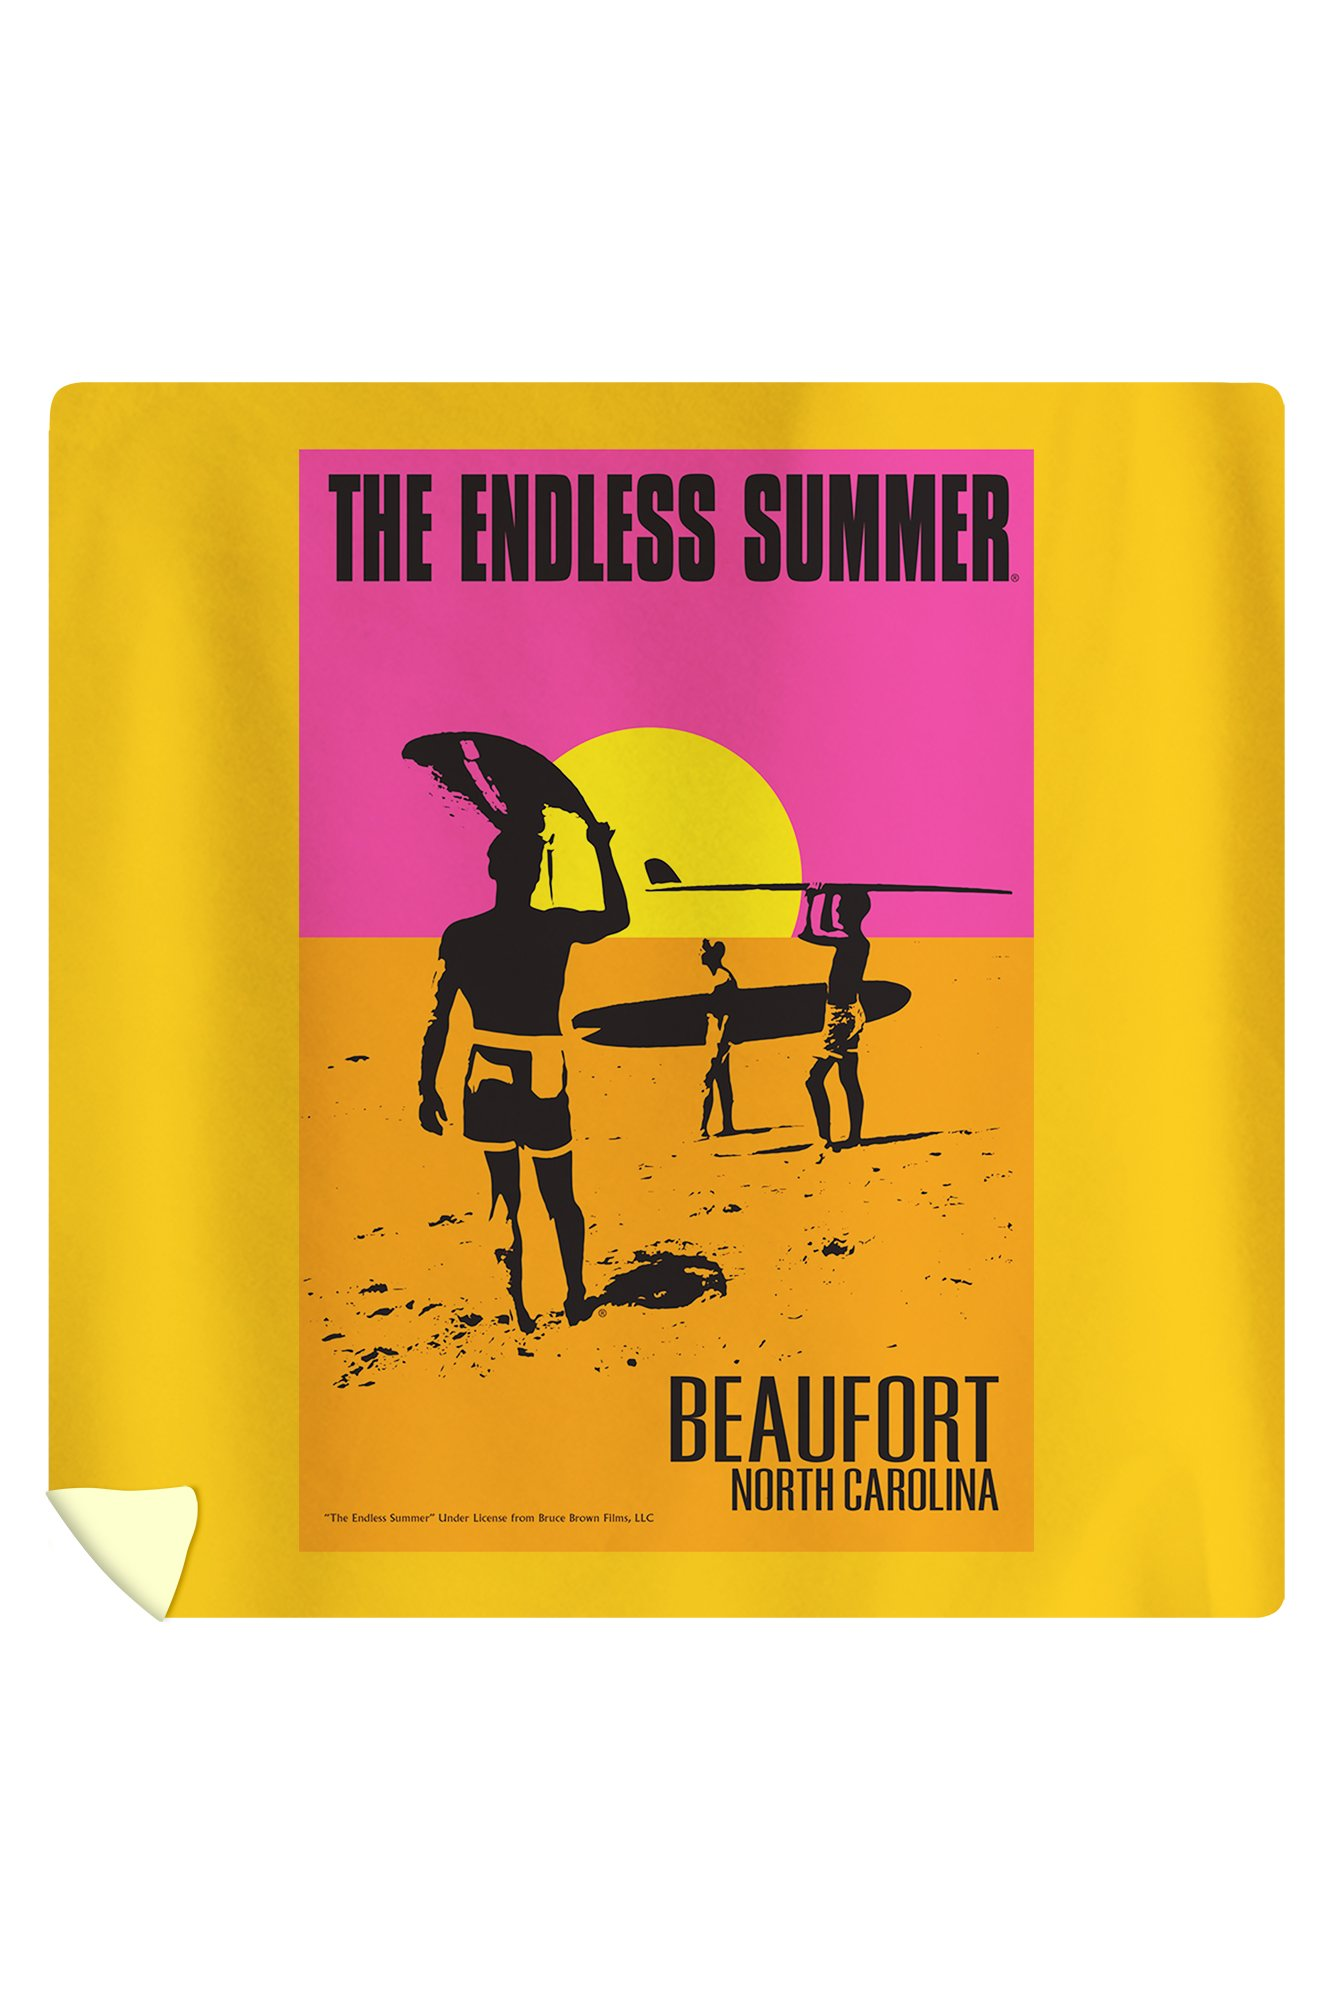 Beaufort, North Carolina - The Endless Summer - Original Movie Poster (88x88 Queen Microfiber Duvet Cover)